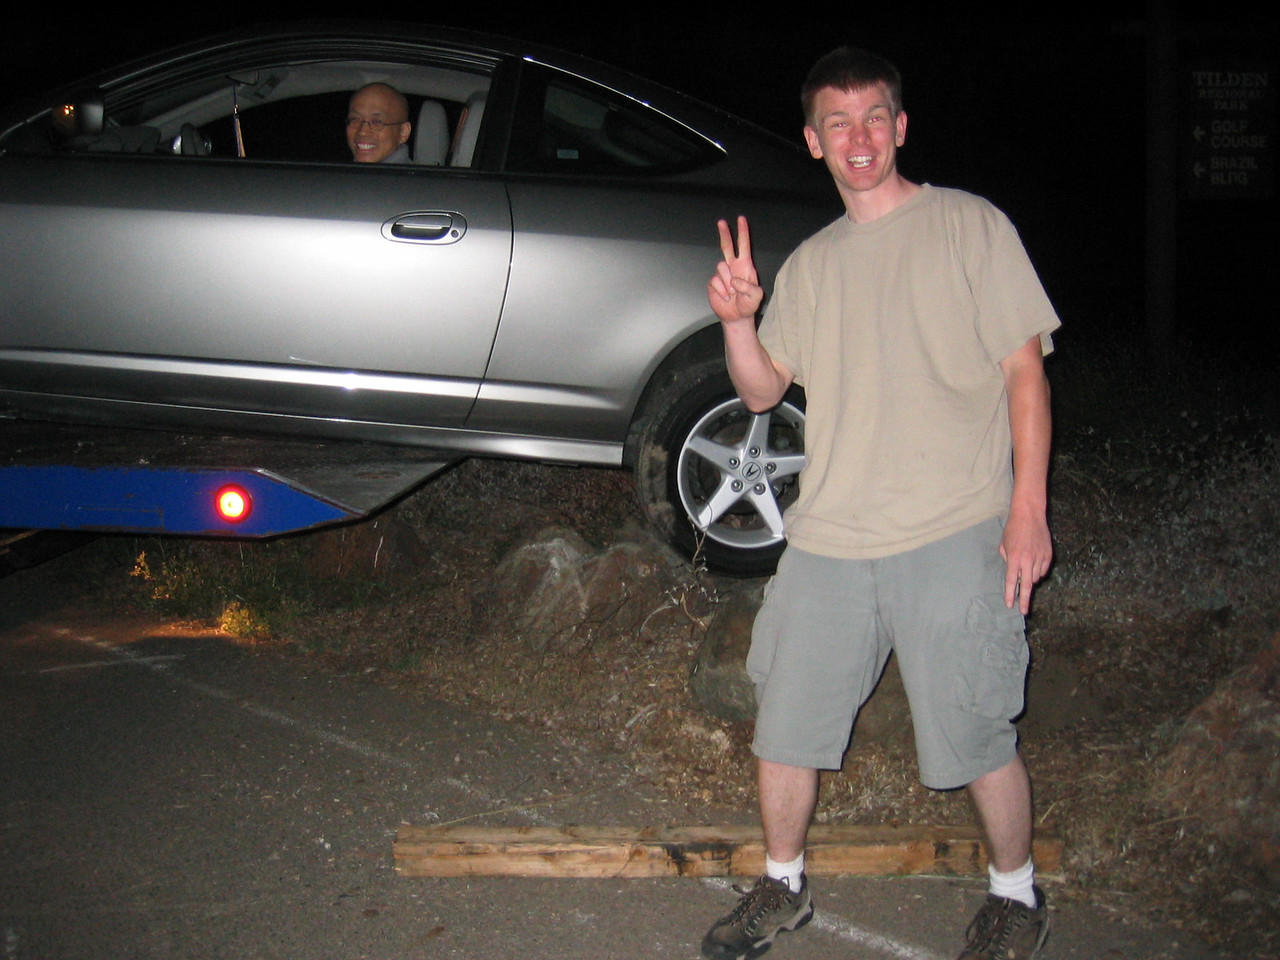 Gilbert and his rock-hopping RSX - In flight, 2003 07 19